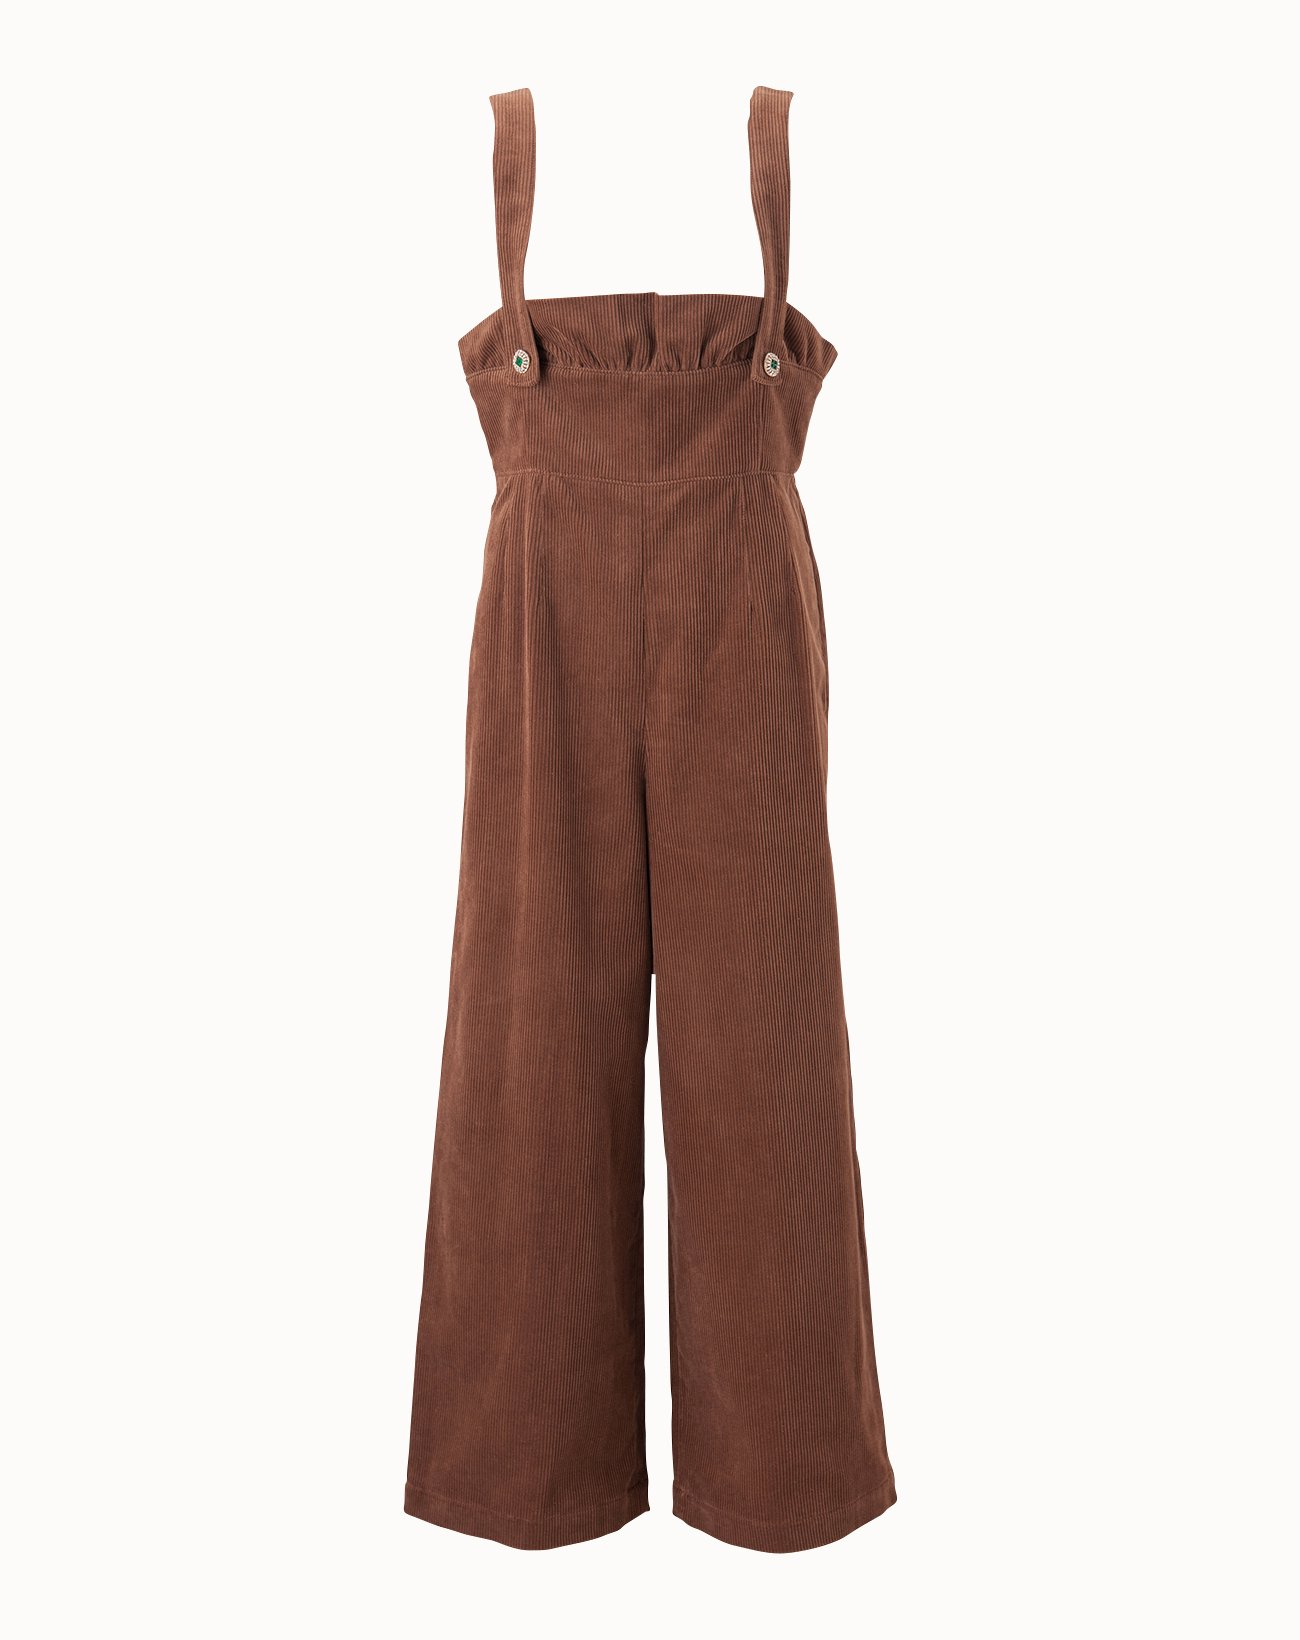 Corduroy Salopette Pants - Brown